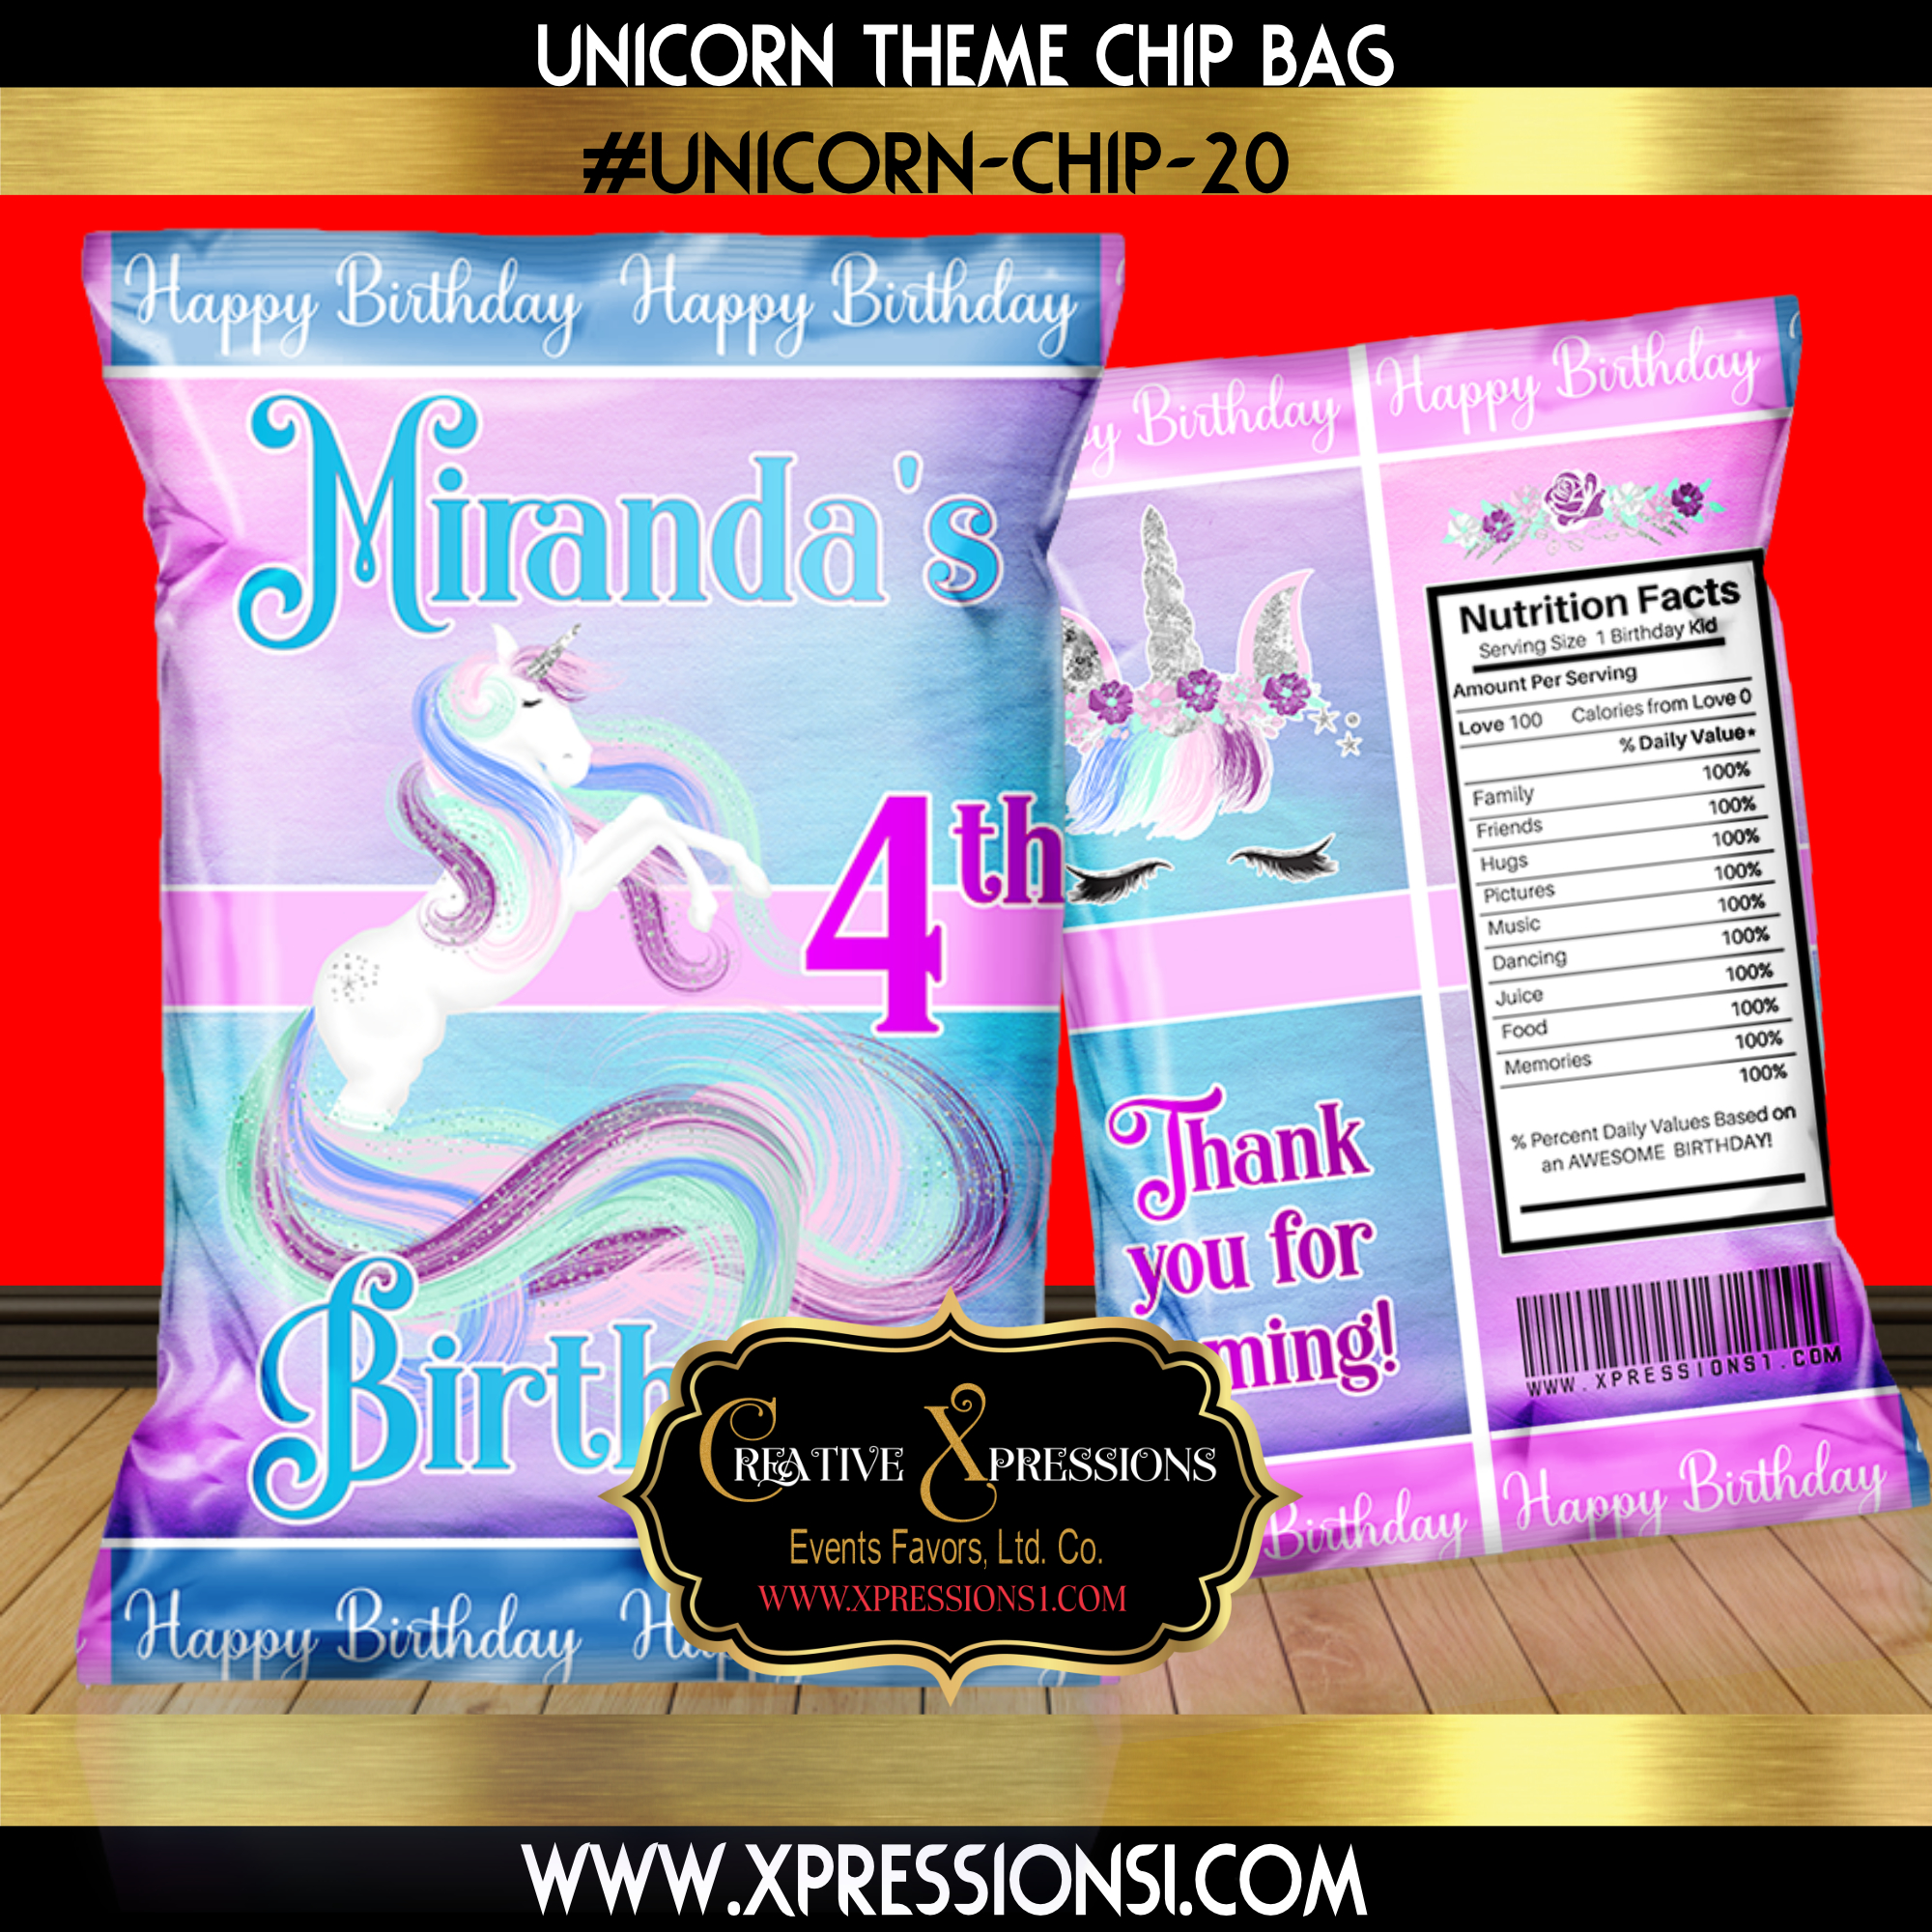 Unicorn Elegance Birthday Chip Bag